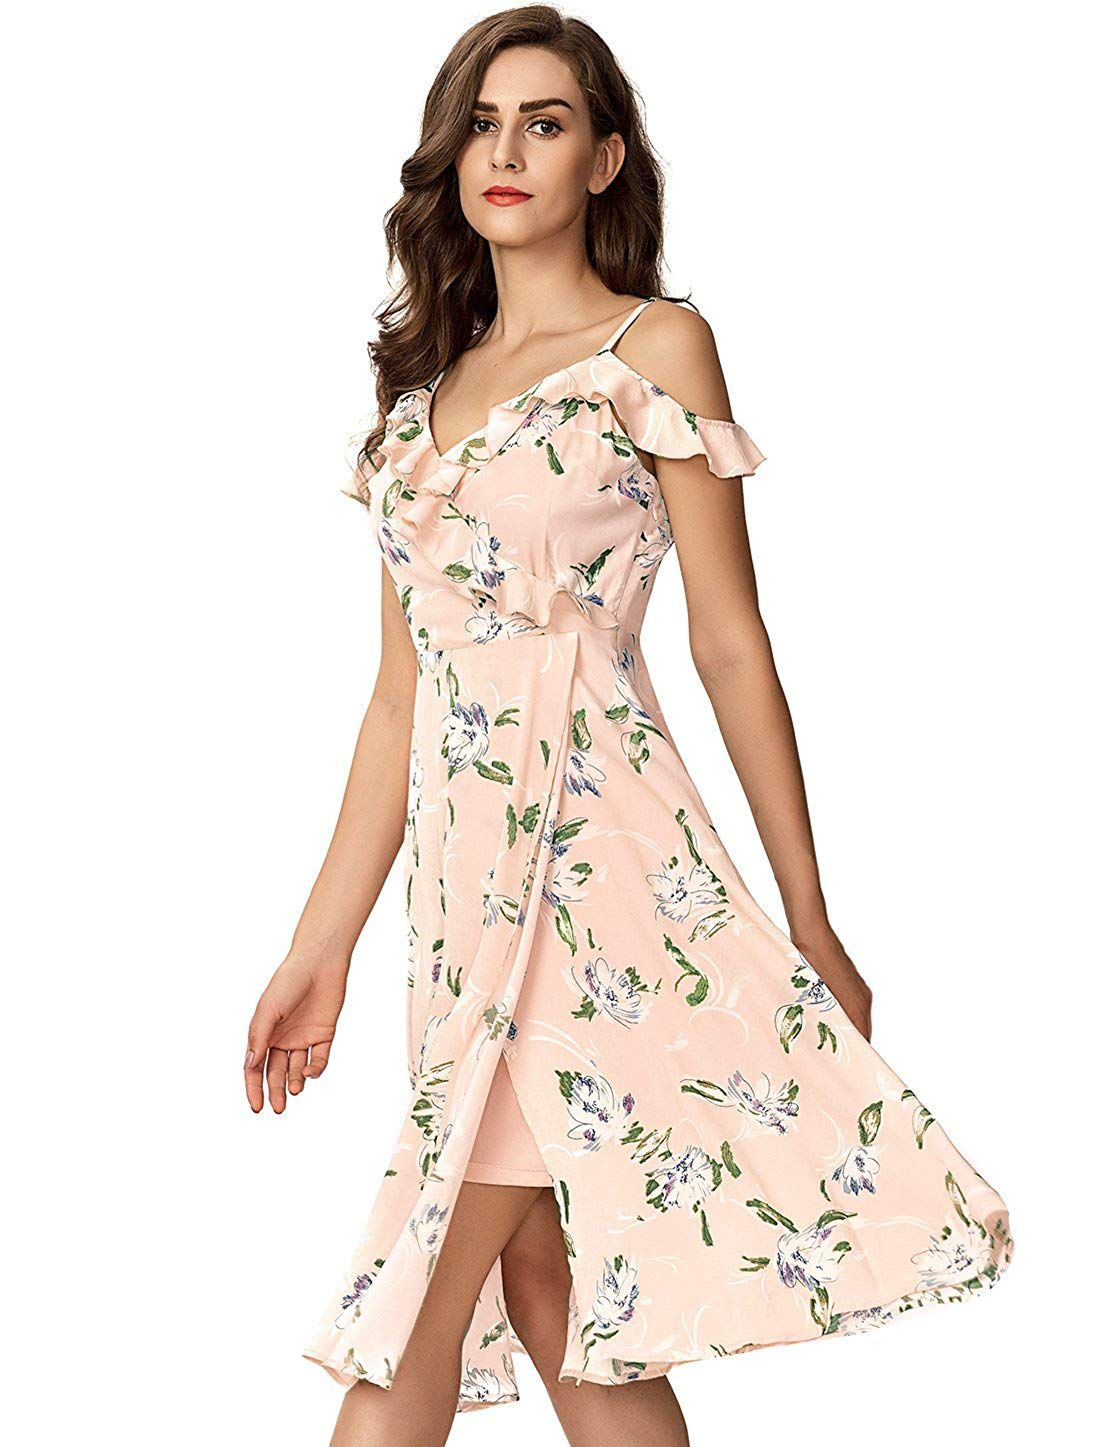 8cd8309772aac Noctflos Women's Summer Floral Cold Shoulder Midi Dress for Casual Cocktail  Wedding Guest at Amazon Women's Clothing store: